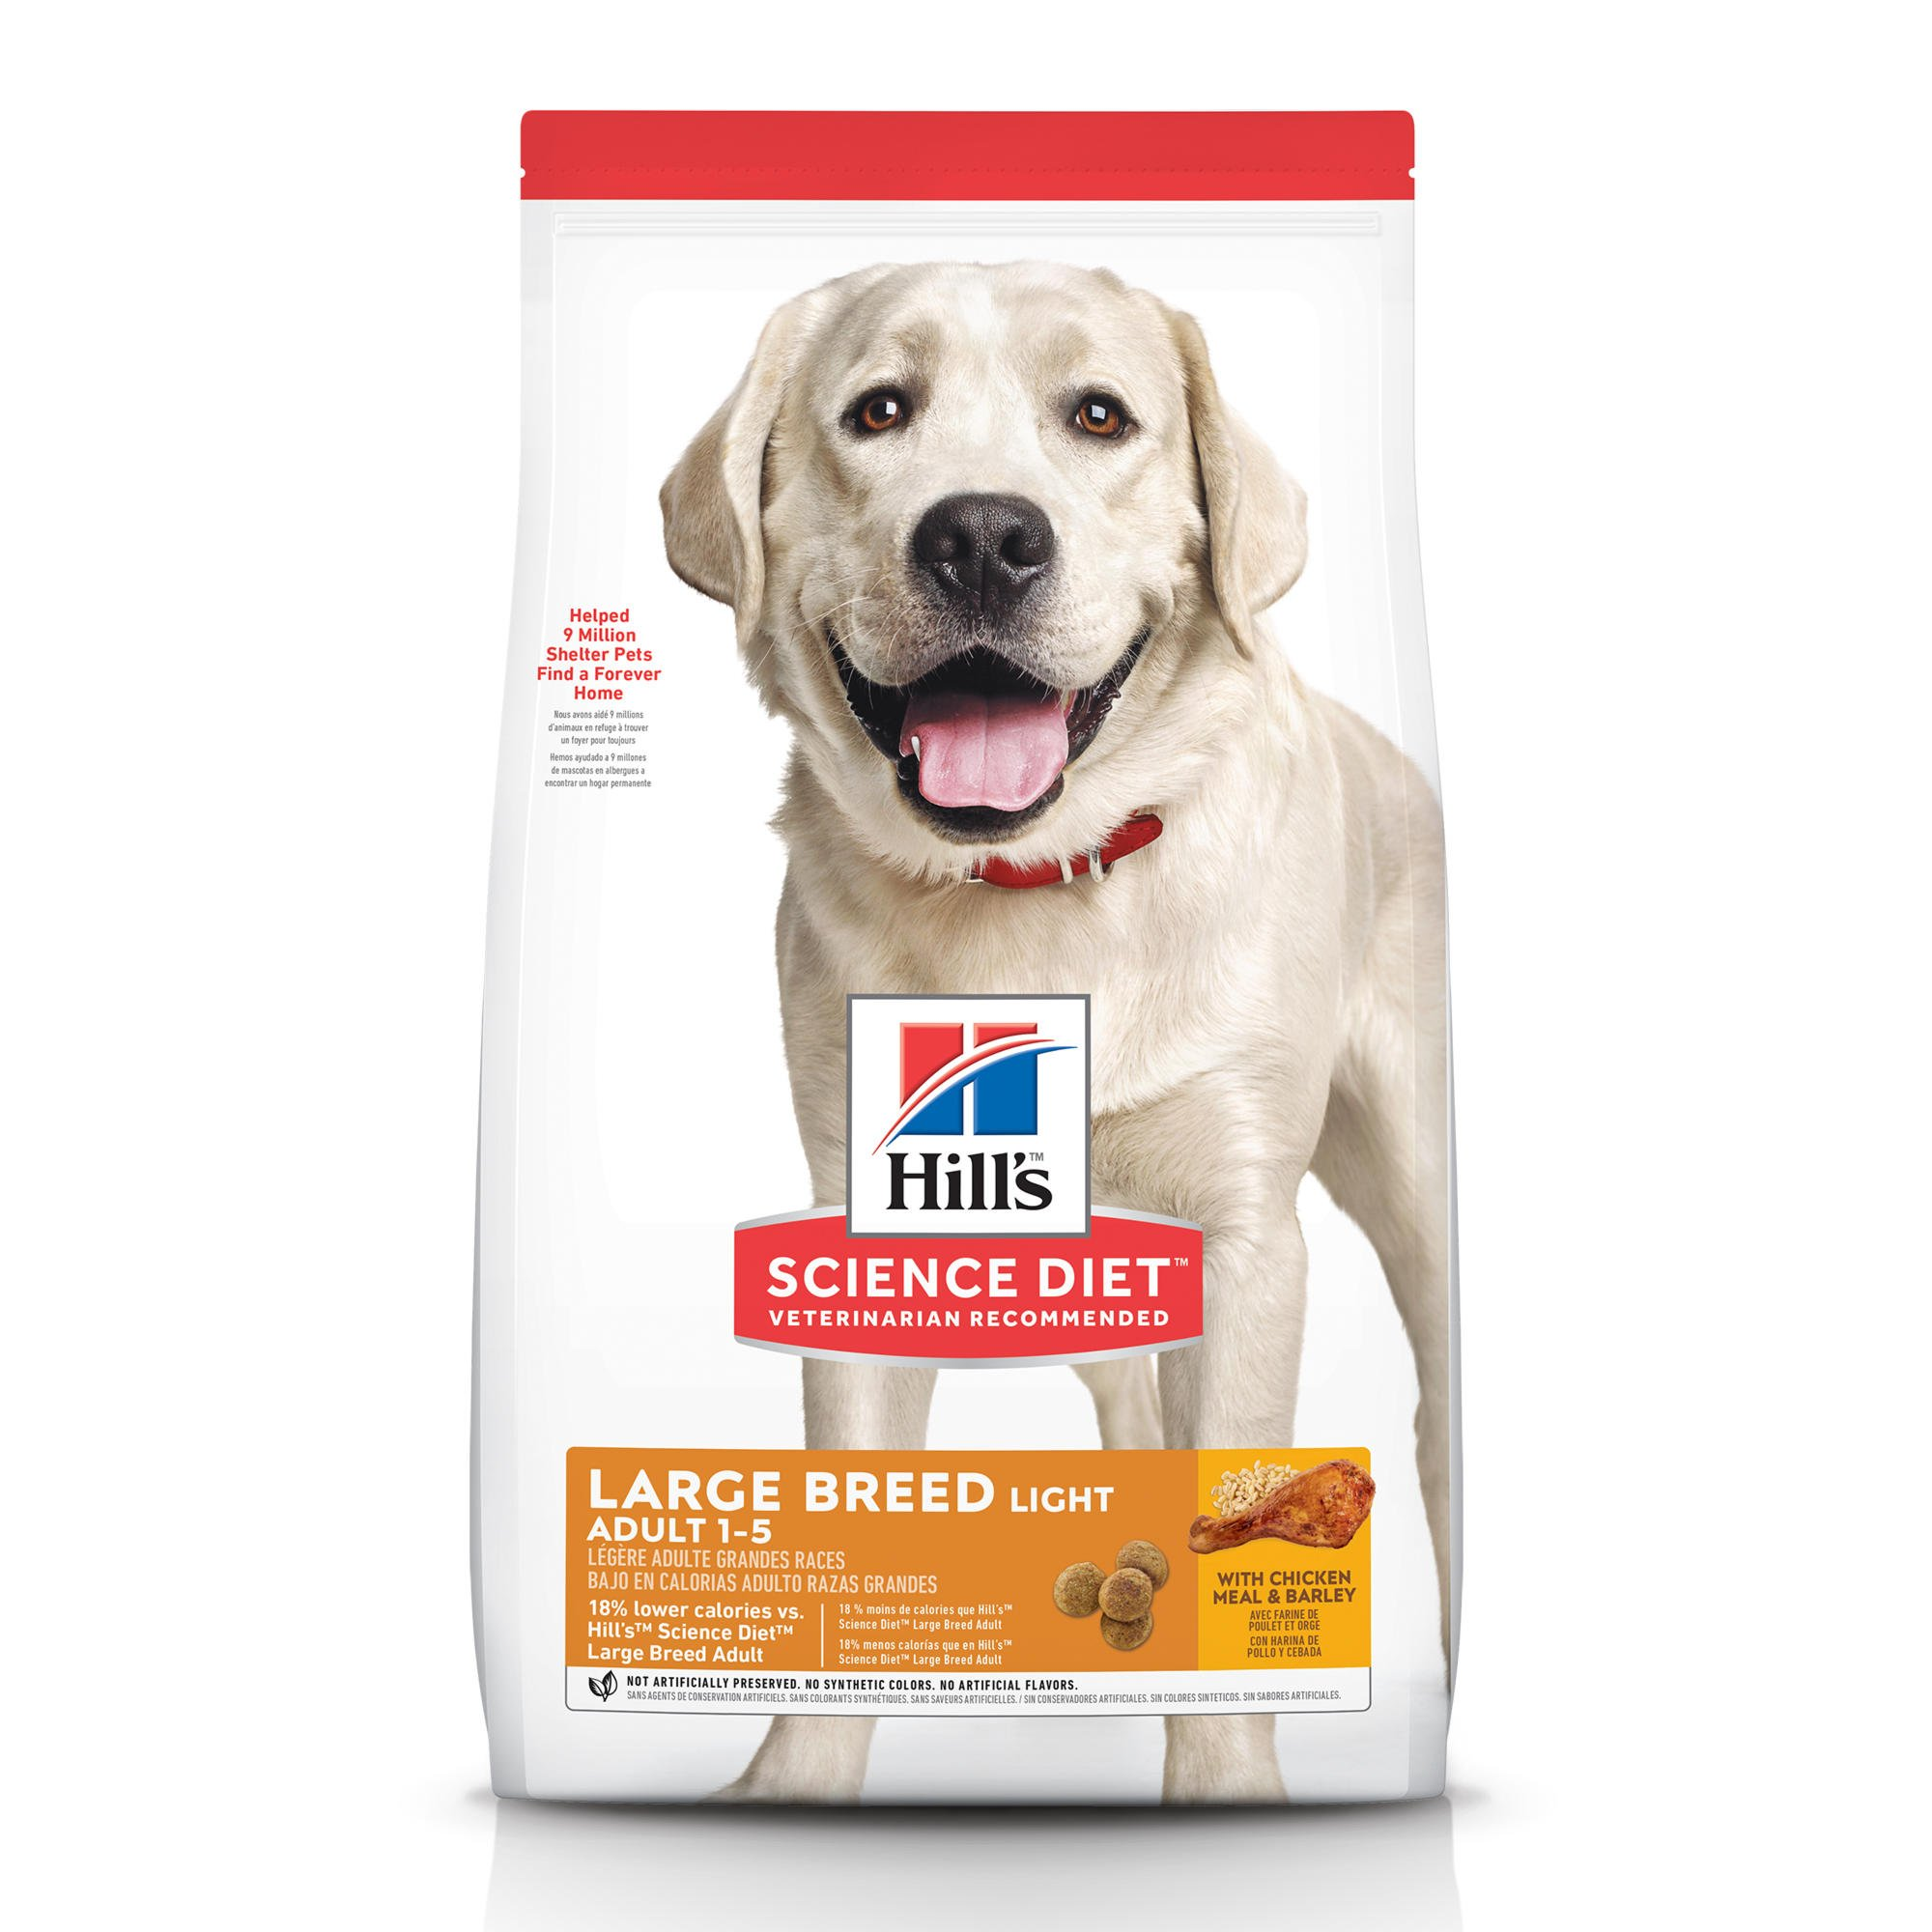 Hill's Science Diet Adult Light Large Breed with Chicken Meal & Barley Dry Dog Food, 15 lbs., Bag